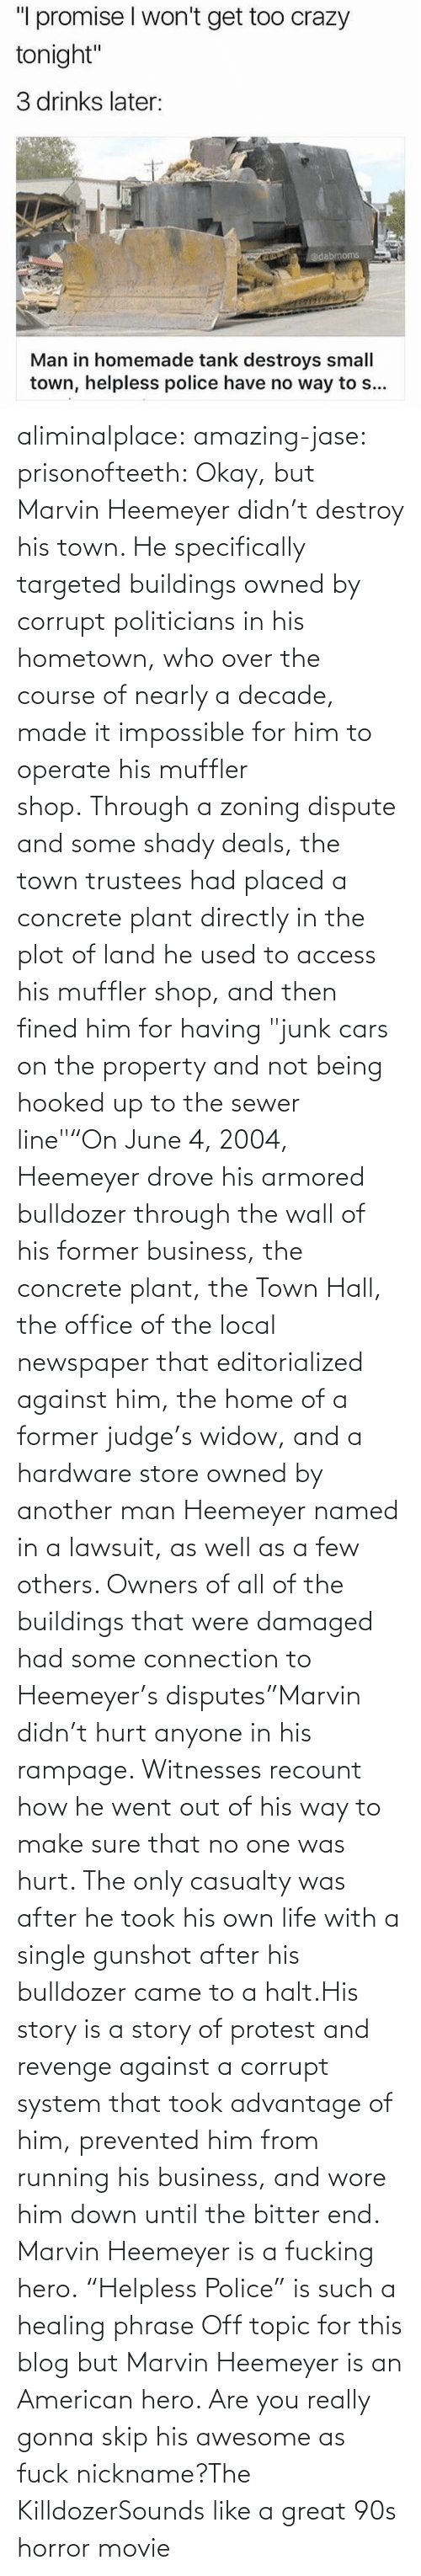 "store: aliminalplace: amazing-jase:  prisonofteeth: Okay, but Marvin Heemeyer didn't destroy his town. He specifically targeted buildings owned by corrupt politicians in his hometown, who over the course of nearly a decade, made it impossible for him to operate his muffler shop. Through a zoning dispute and some shady deals, the town trustees had placed a concrete plant directly in the plot of land he used to access his muffler shop, and then fined him for having ""junk cars on the property and not being hooked up to the sewer line""""On June 4, 2004, Heemeyer drove his armored bulldozer through the wall of his former business, the concrete plant, the Town Hall, the office of the local newspaper that editorialized against him, the home of a former judge's widow, and a hardware store owned by another man Heemeyer named in a lawsuit, as well as a few others. Owners of all of the buildings that were damaged had some connection to Heemeyer's disputes""Marvin didn't hurt anyone in his rampage. Witnesses recount how he went out of his way to make sure that no one was hurt. The only casualty was after he took his own life with a single gunshot after his bulldozer came to a halt.His story is a story of protest and revenge against a corrupt system that took advantage of him, prevented him from running his business, and wore him down until the bitter end. Marvin Heemeyer is a fucking hero. ""Helpless Police"" is such a healing phrase    Off topic for this blog but Marvin Heemeyer is an American hero.     Are you really gonna skip his awesome as fuck nickname?The KilldozerSounds like a great 90s horror movie"